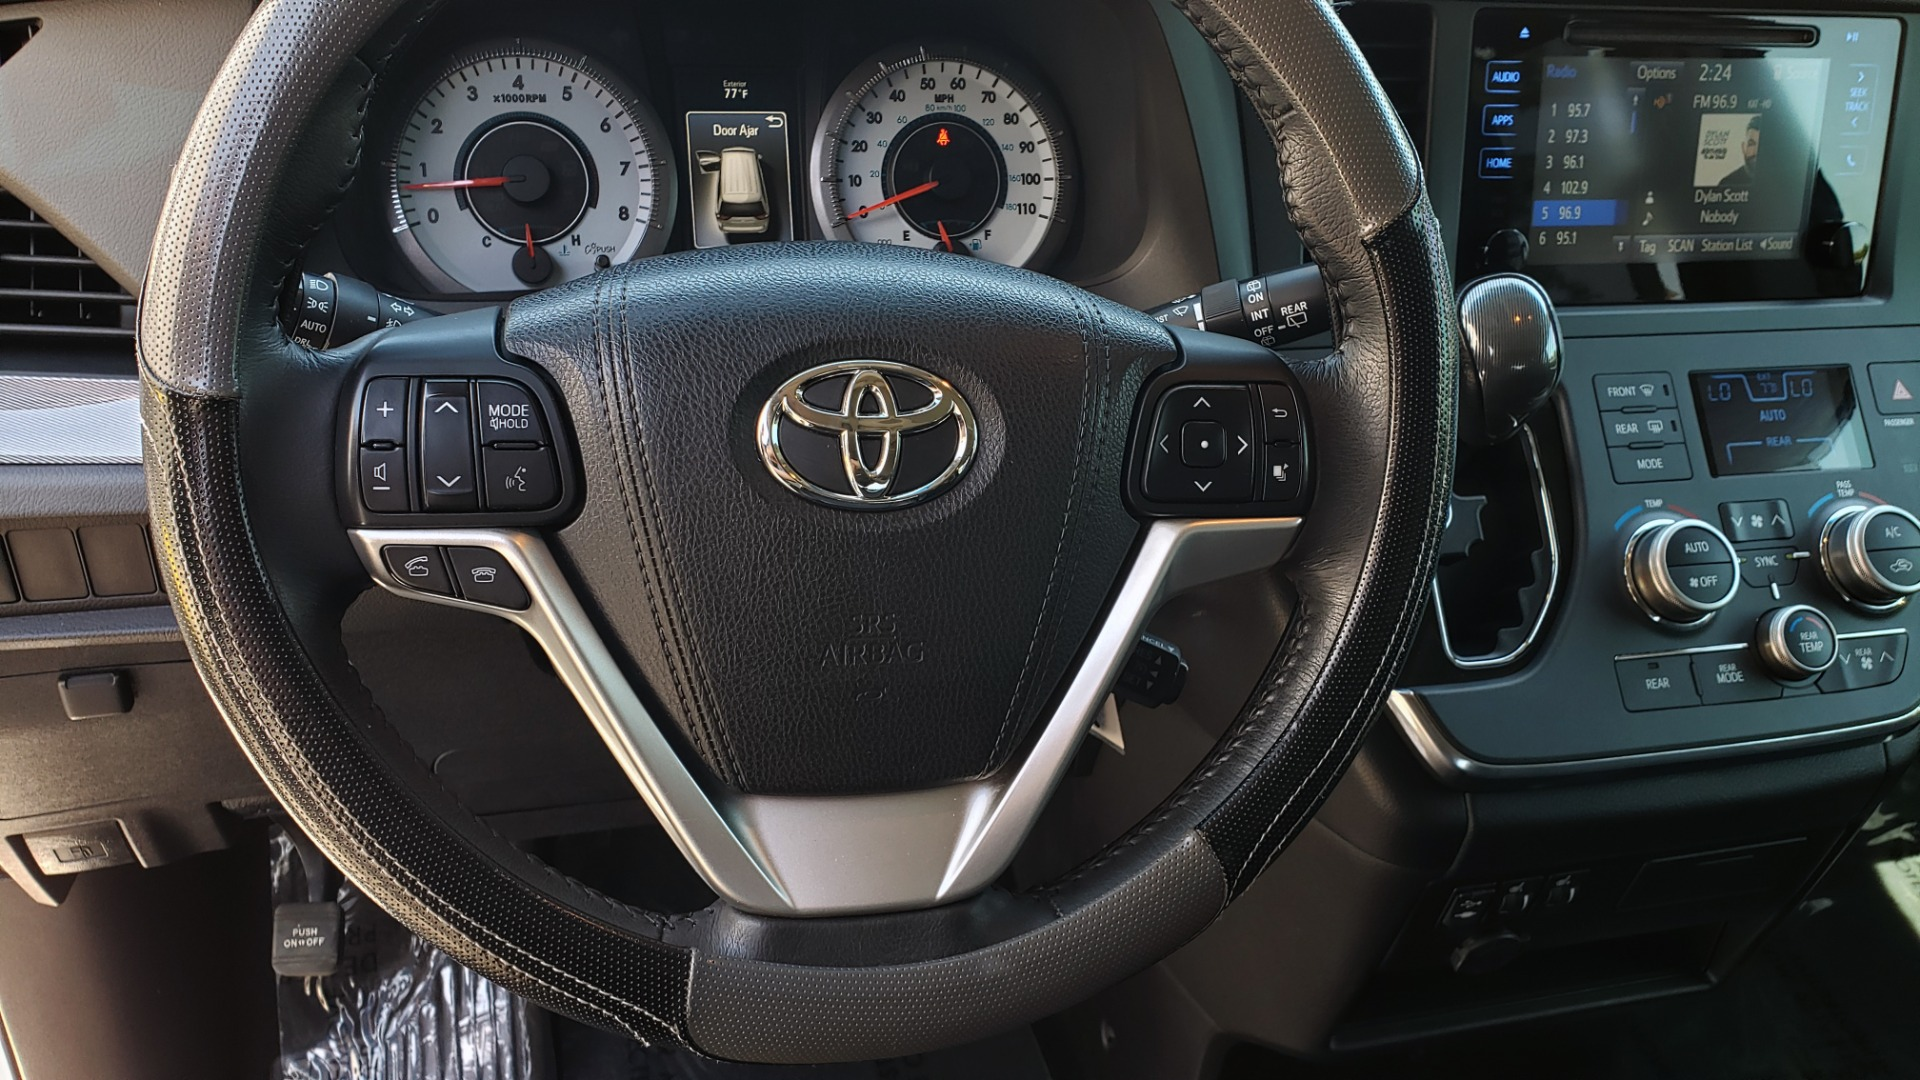 Used 2015 Toyota SIENNA SE 3.5L / FWD / 3-ROWS / 8-PASS / SUNROOF / DVD / REARVIEW for sale $21,995 at Formula Imports in Charlotte NC 28227 40